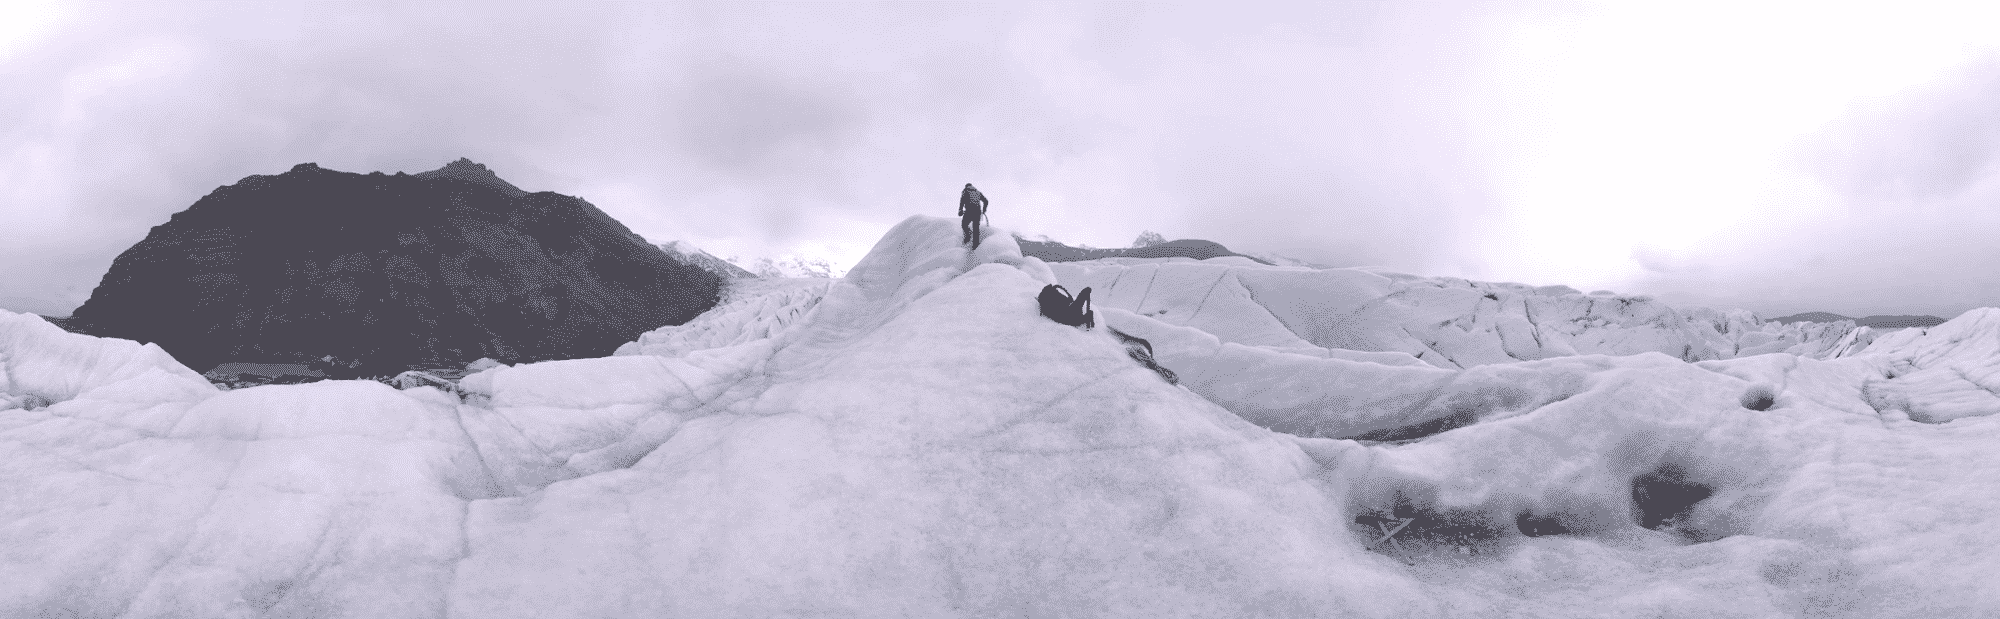 VR and Cinema - example scene of climber on Icelandic glacier